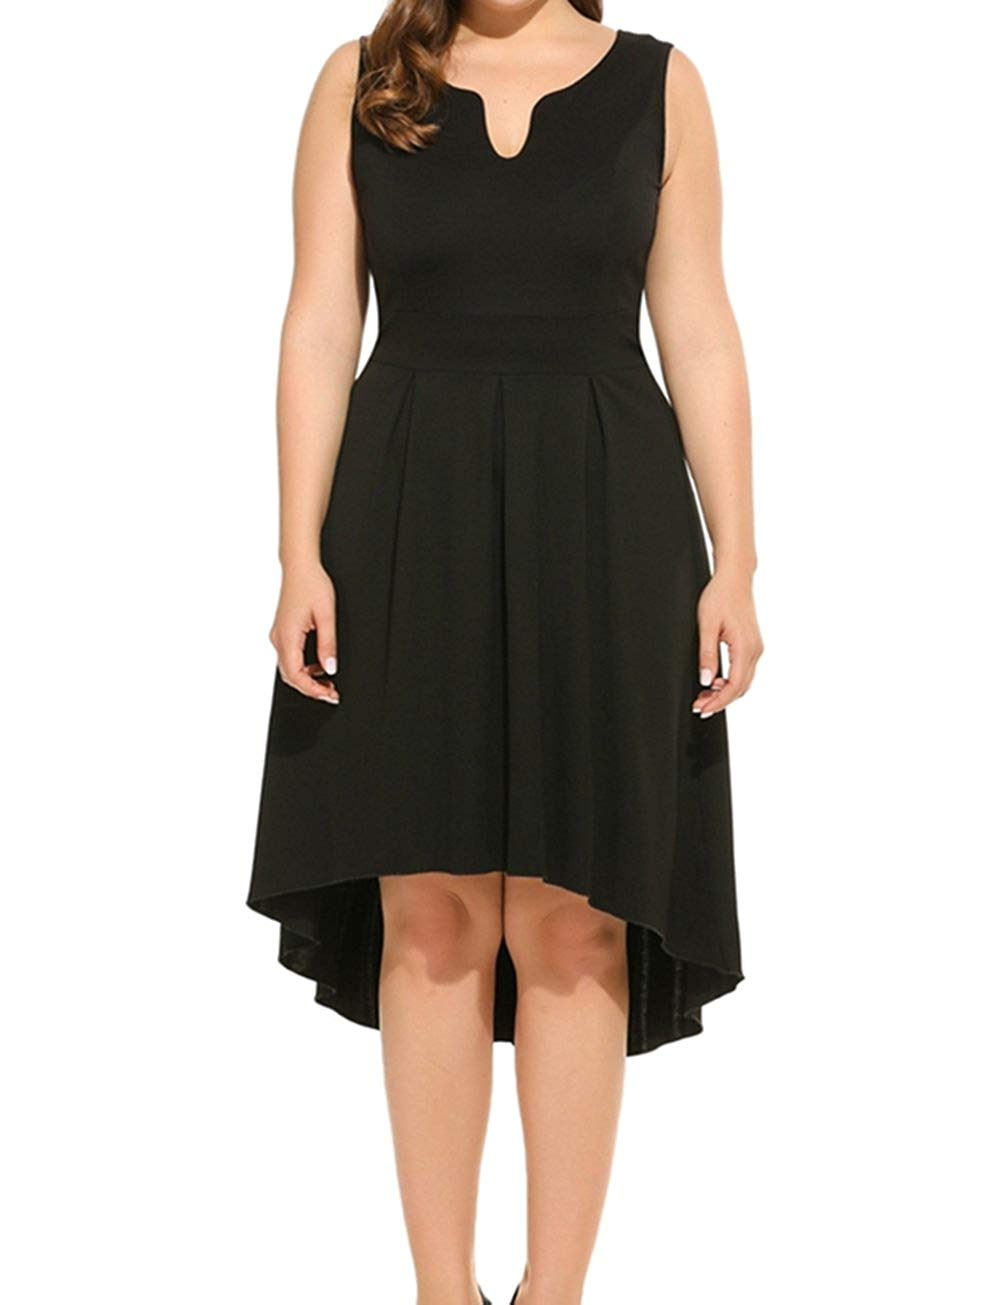 476090bba87 Get Quotations · Kancystore Women s Plus Size Fit and Flare V-Neck  Sleevless Dress High Low Cocktail Party